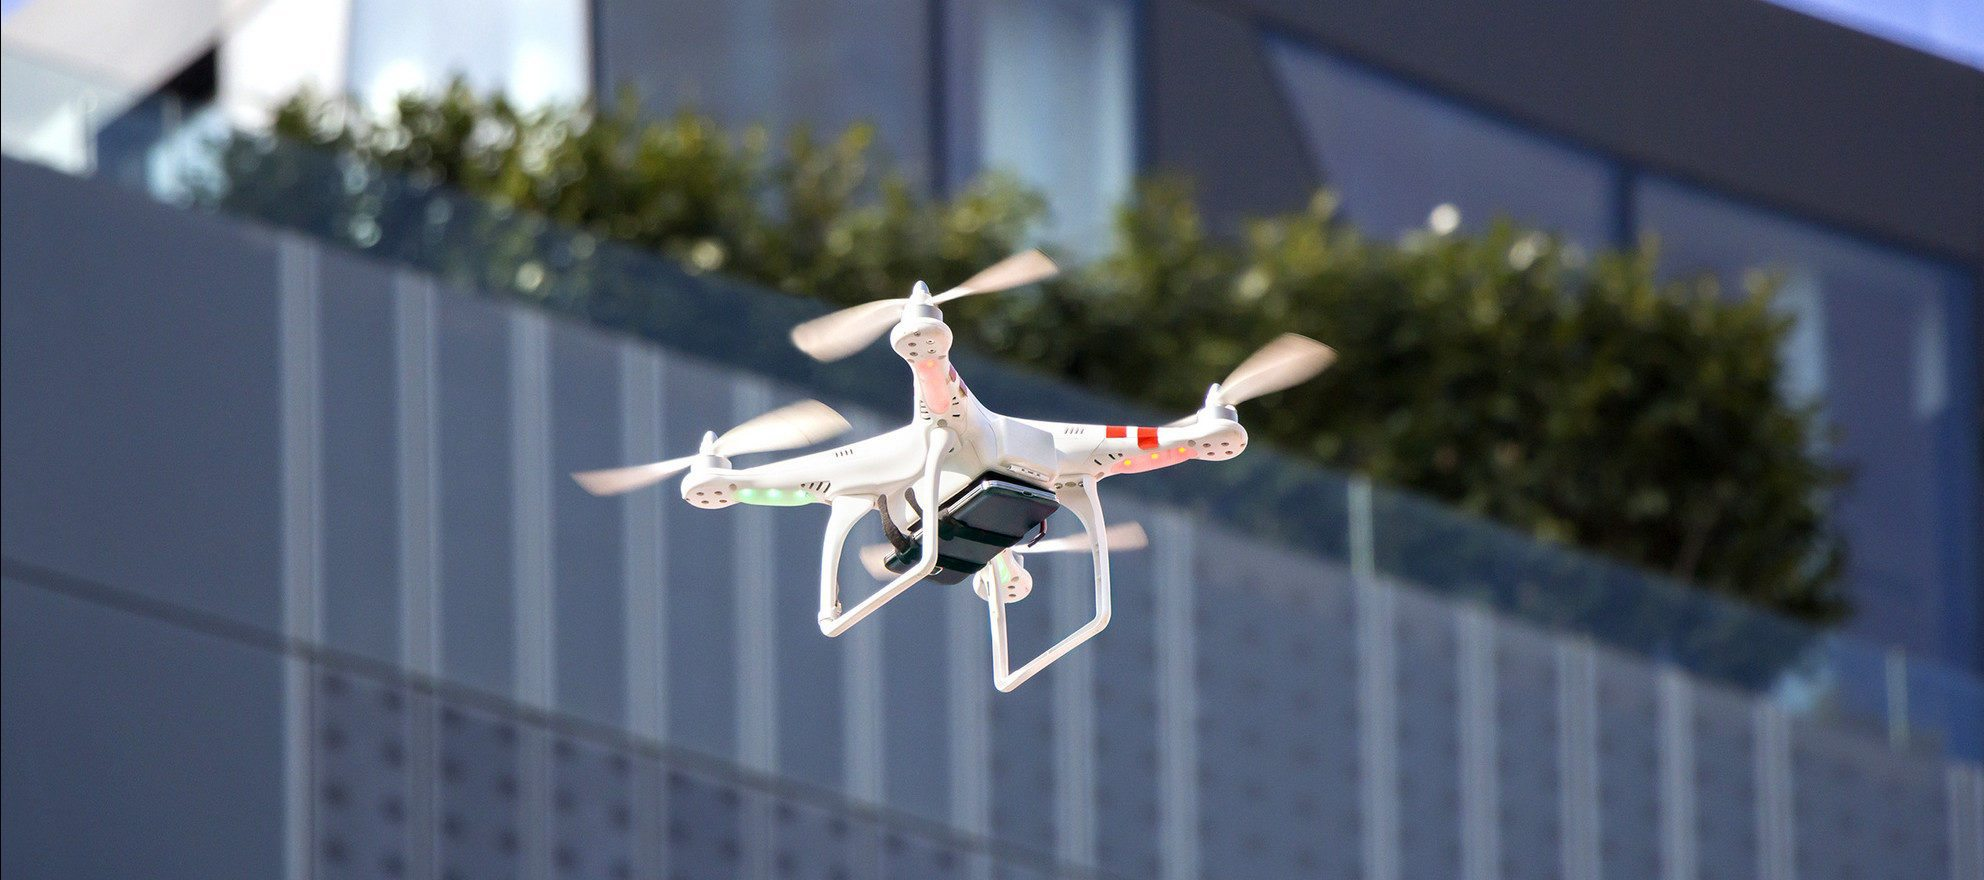 New FAA law will require drones to display registration